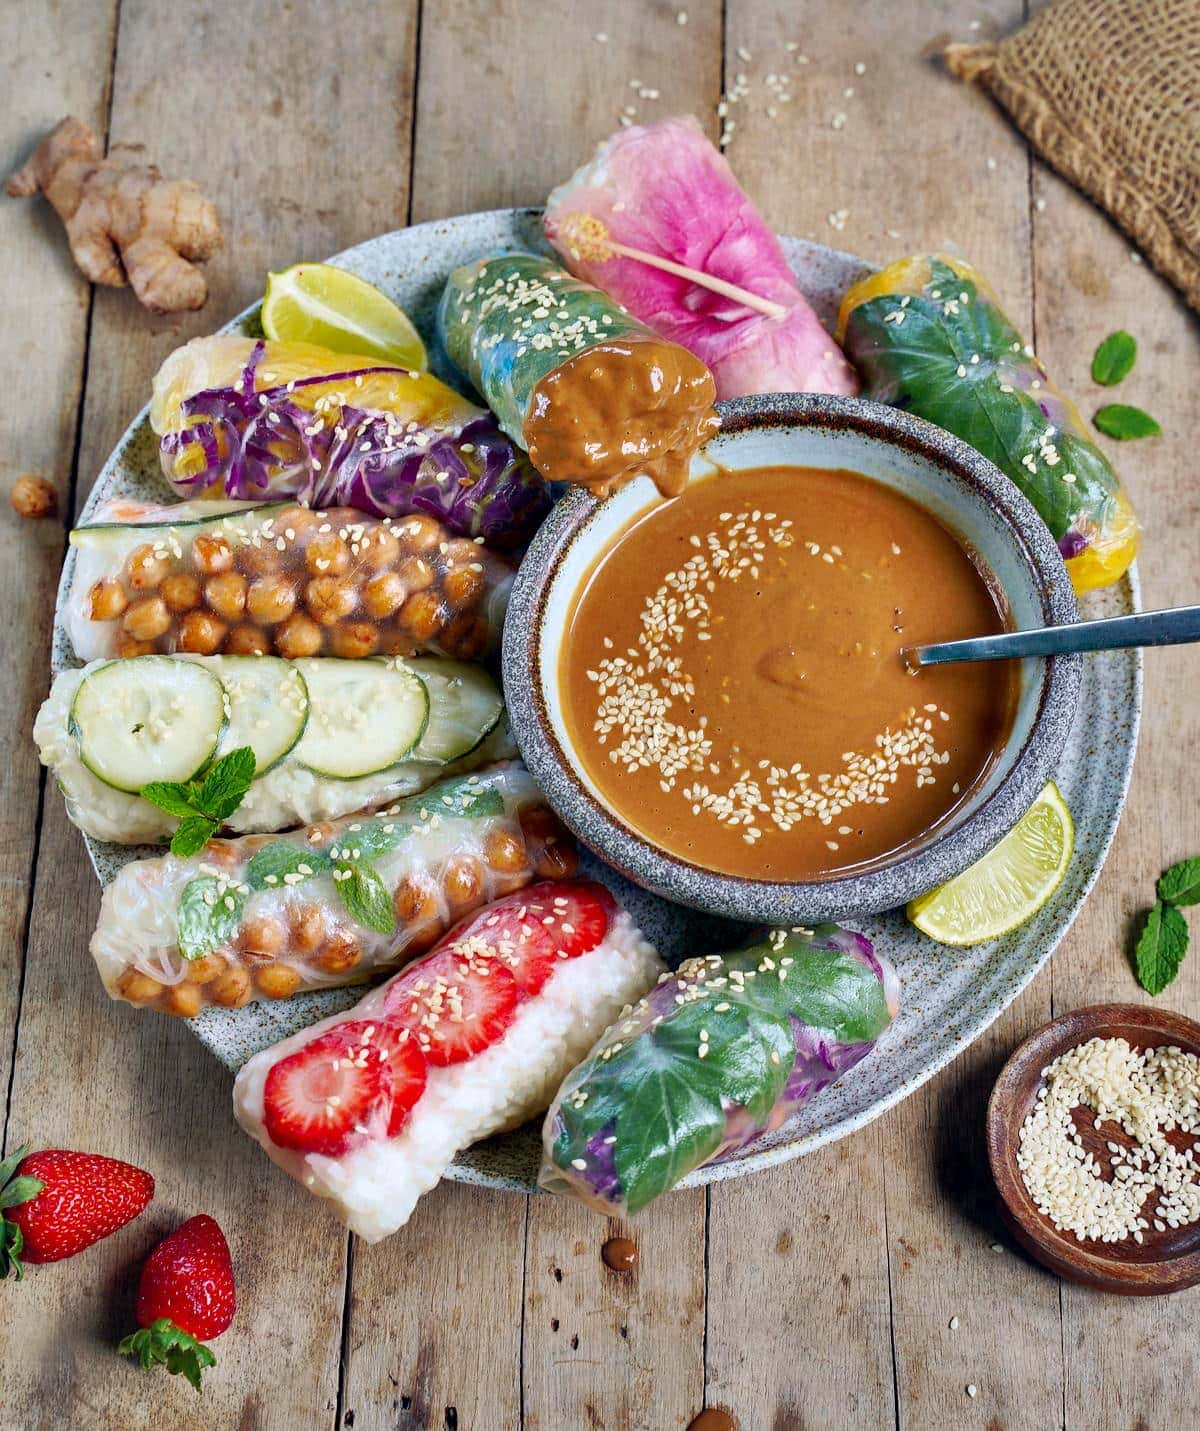 summer roll dipped in peanut sauce on large plate